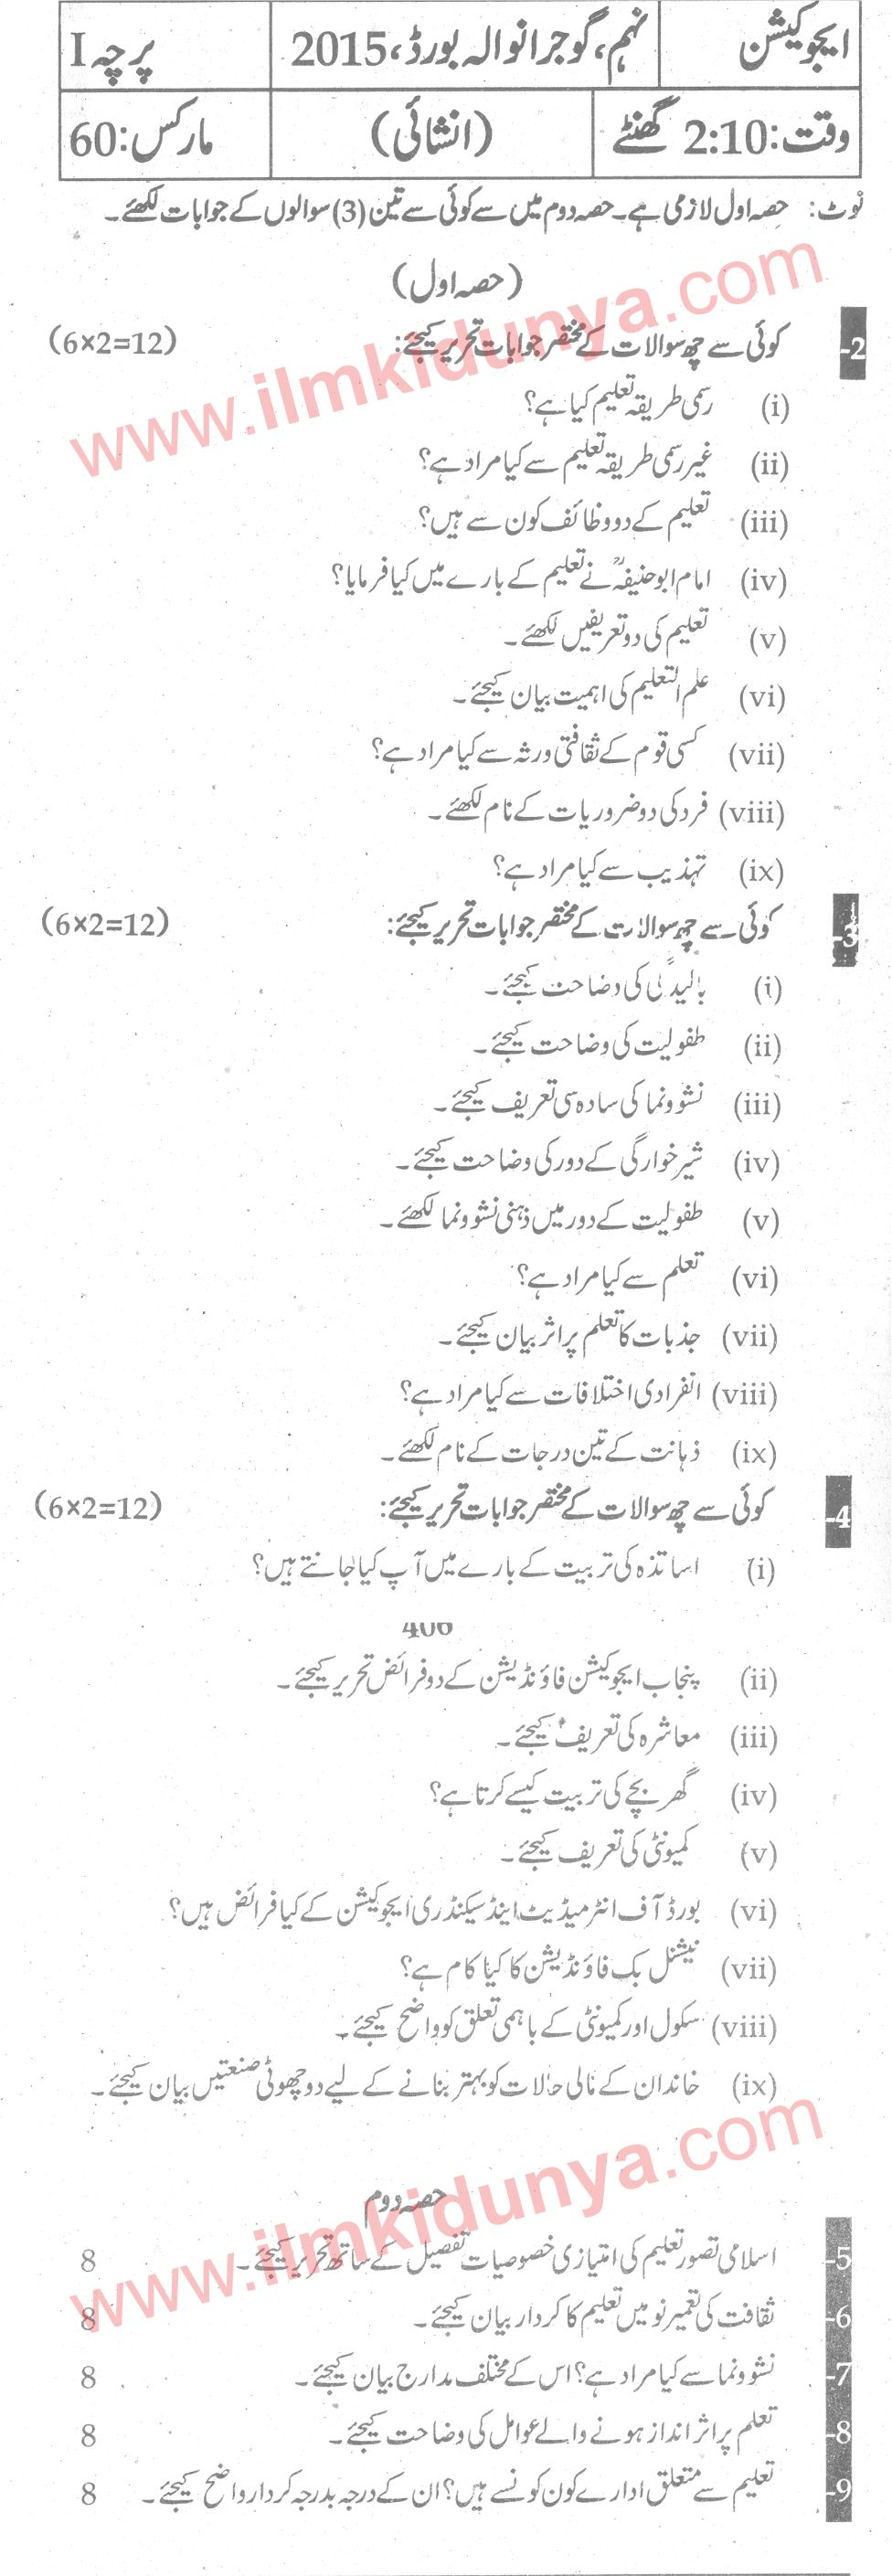 Past Papers 2015 Gujranwala Board 9th Class Education